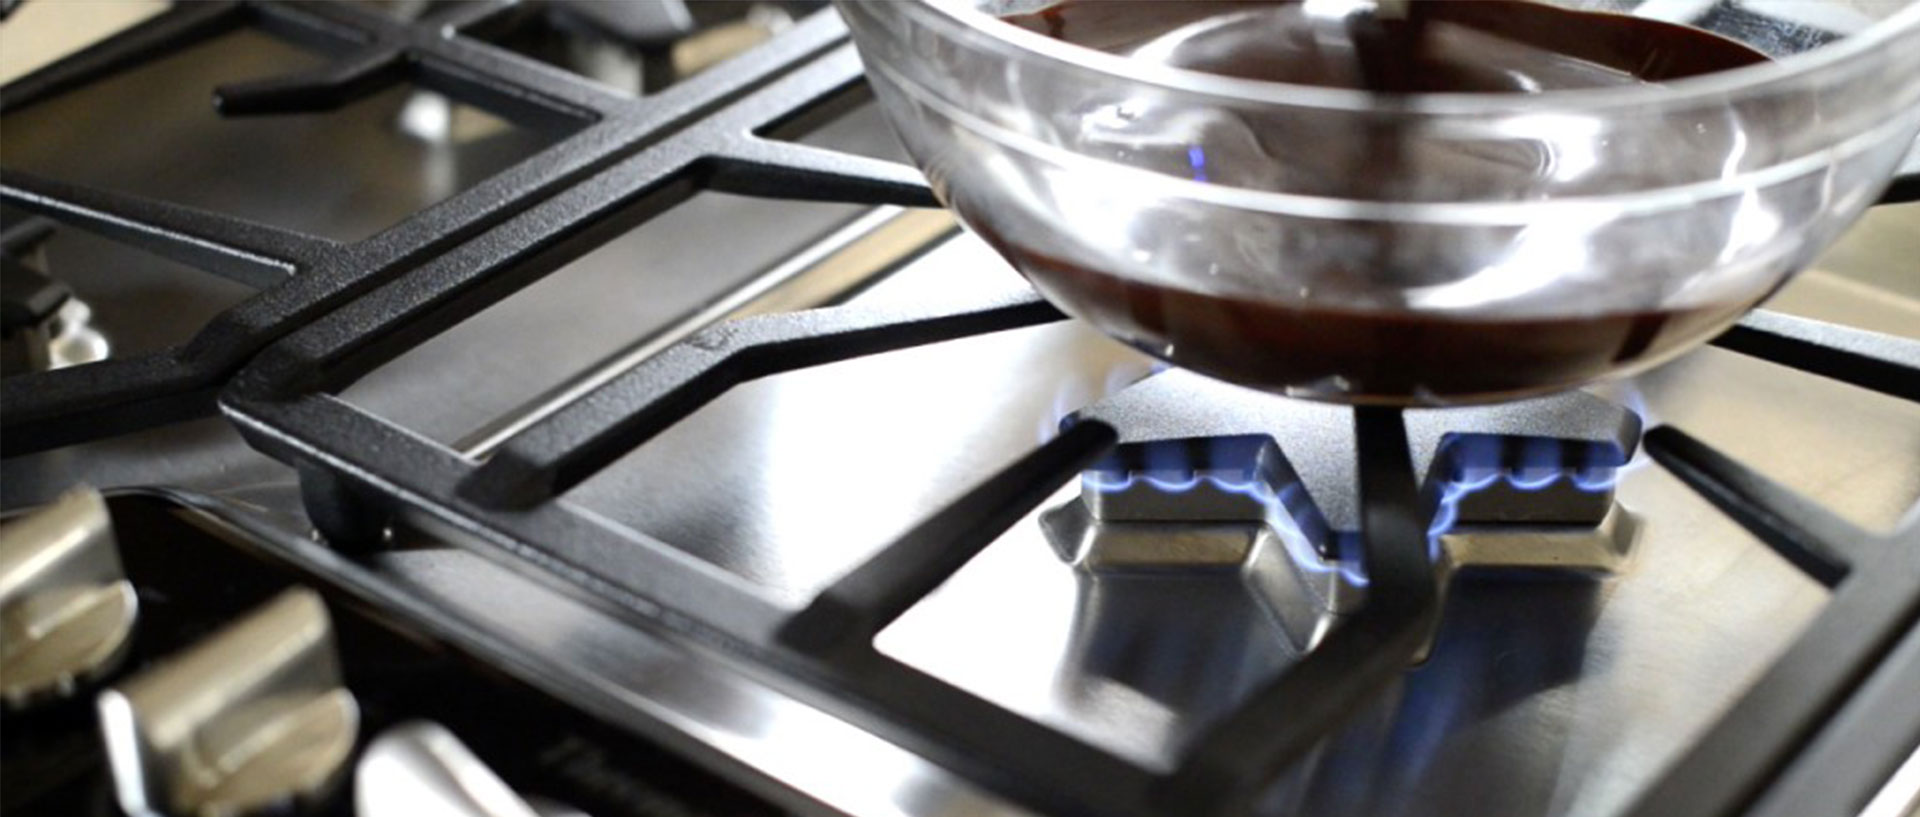 melting-chocolate-at-the-extra-low-flame